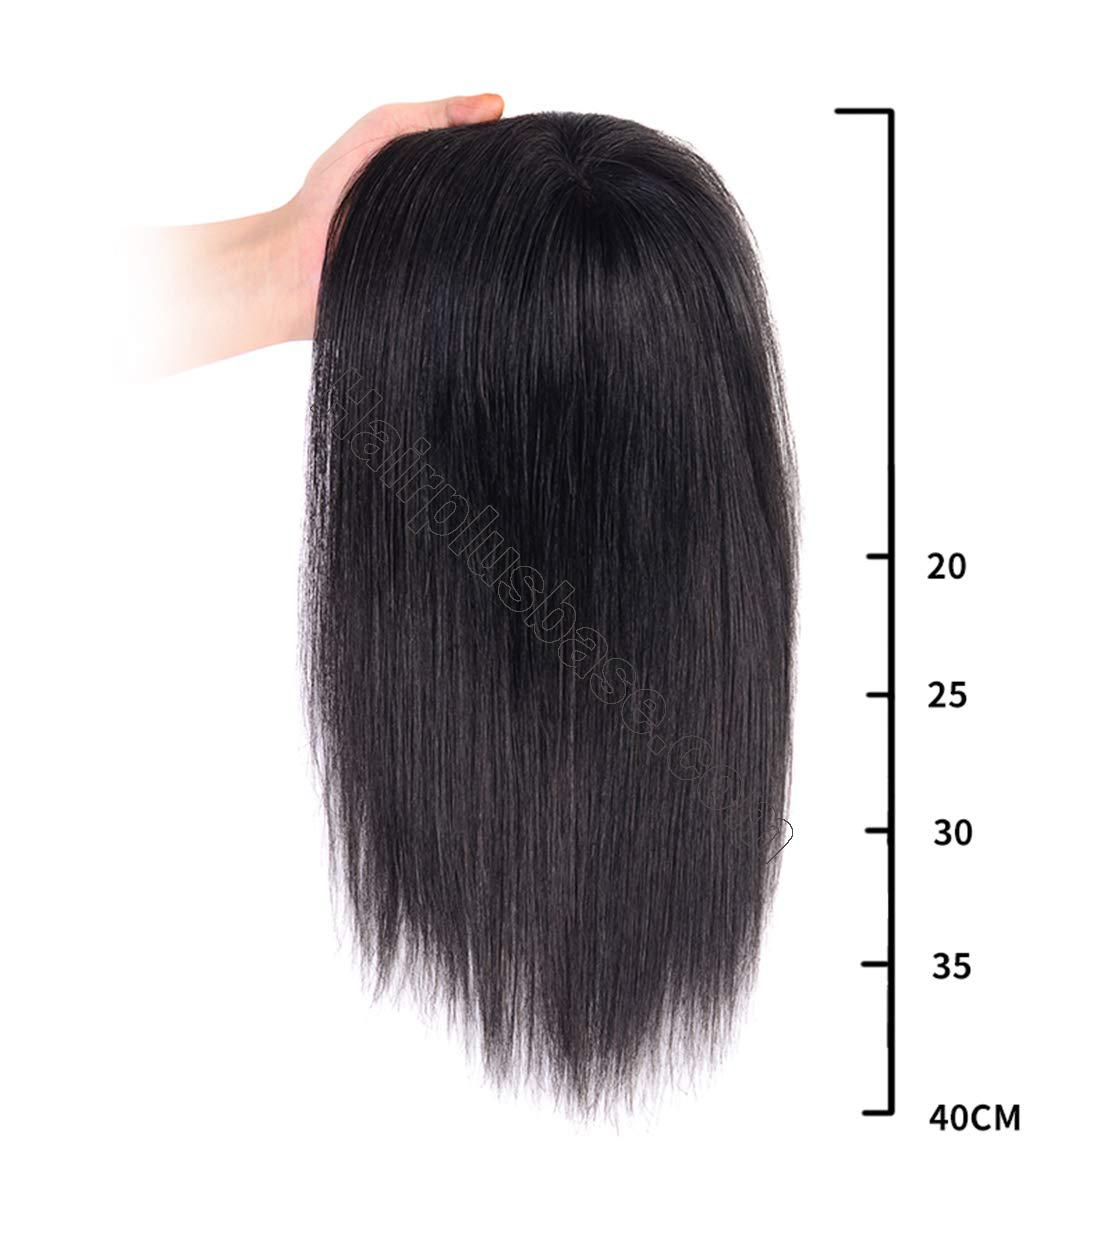 Straight Human Hair Crown Toppers for Women with Thinning Hair, Clips in Hand Tied Hair Topper with Bangs 2